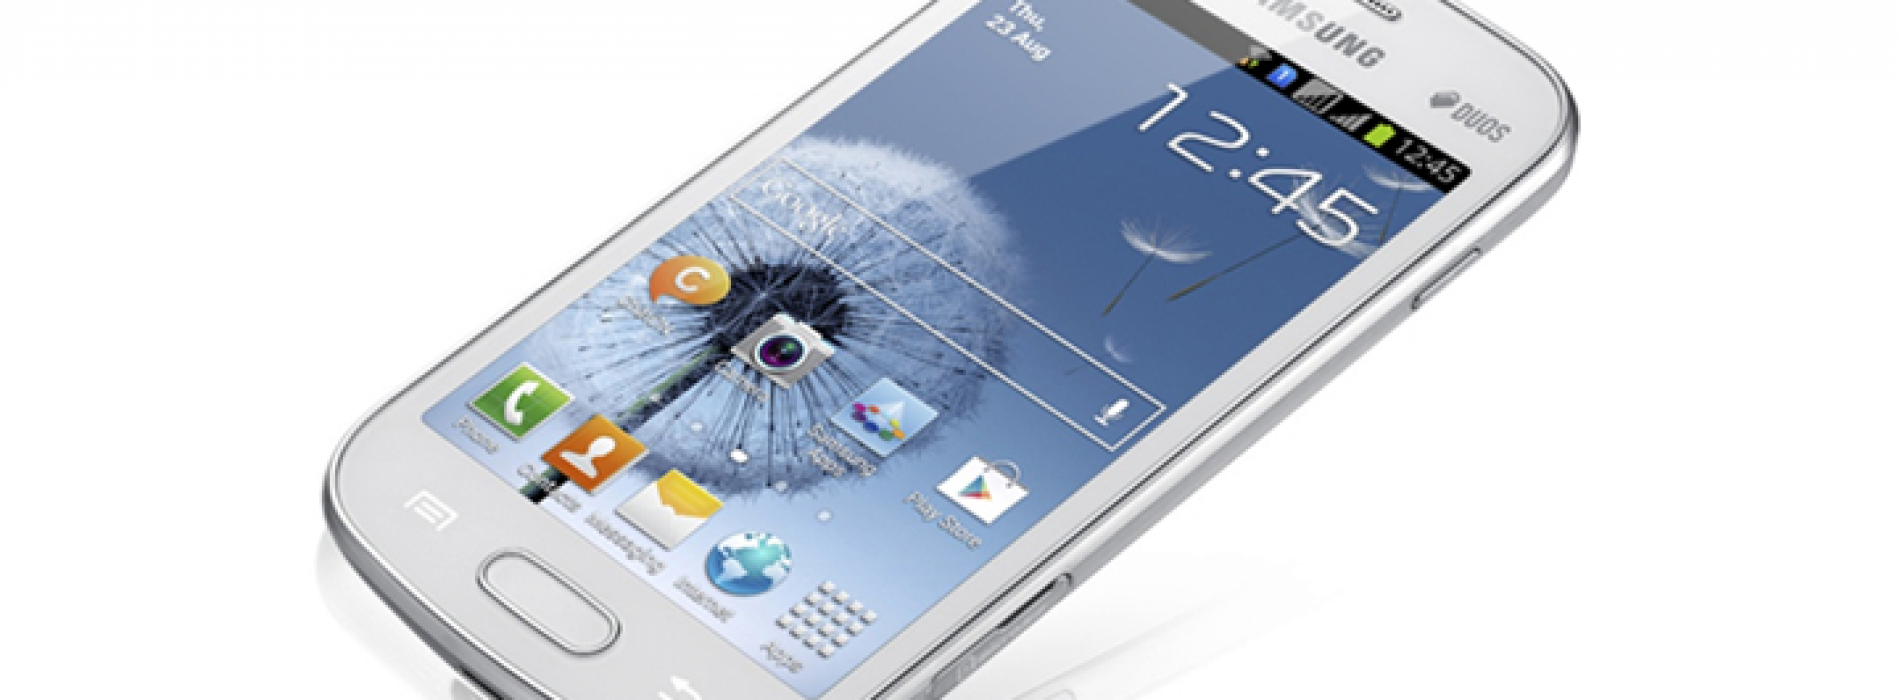 Samsung debuts dual-SIM GALAXY S DUOS for Europe and other markets